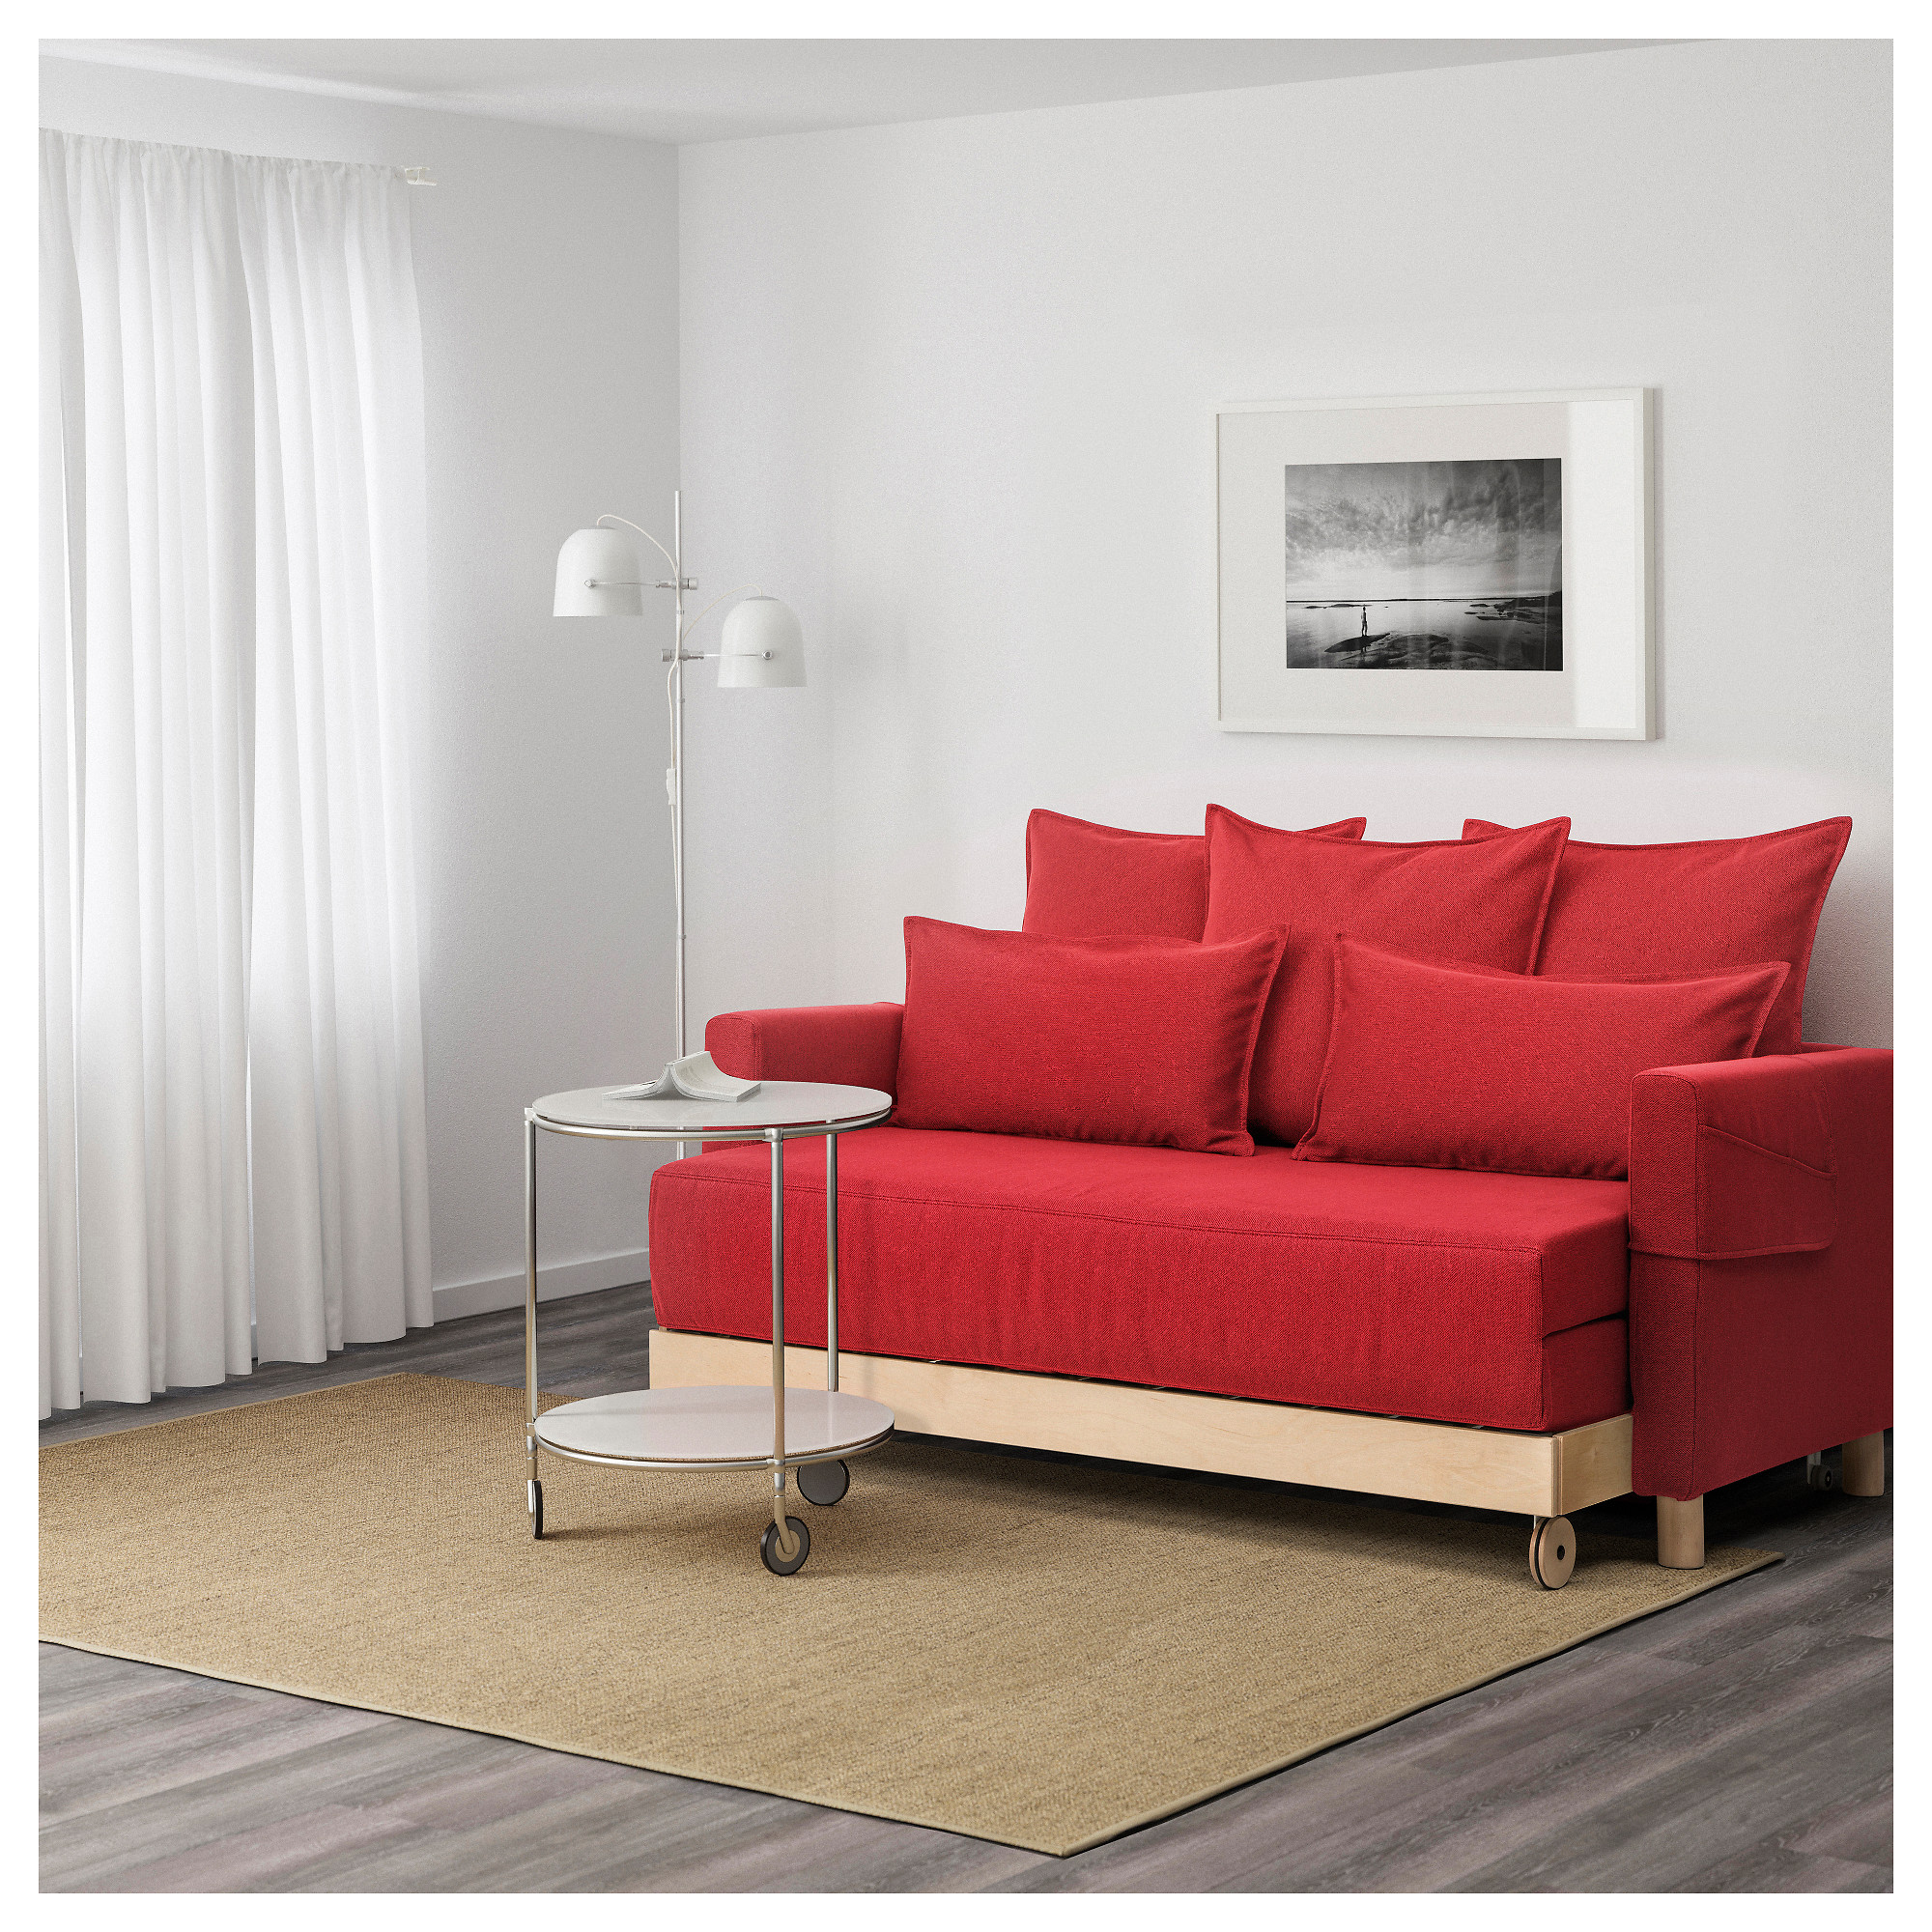 "ASKEN""SET Sofa bed Finnsta red IKEA"